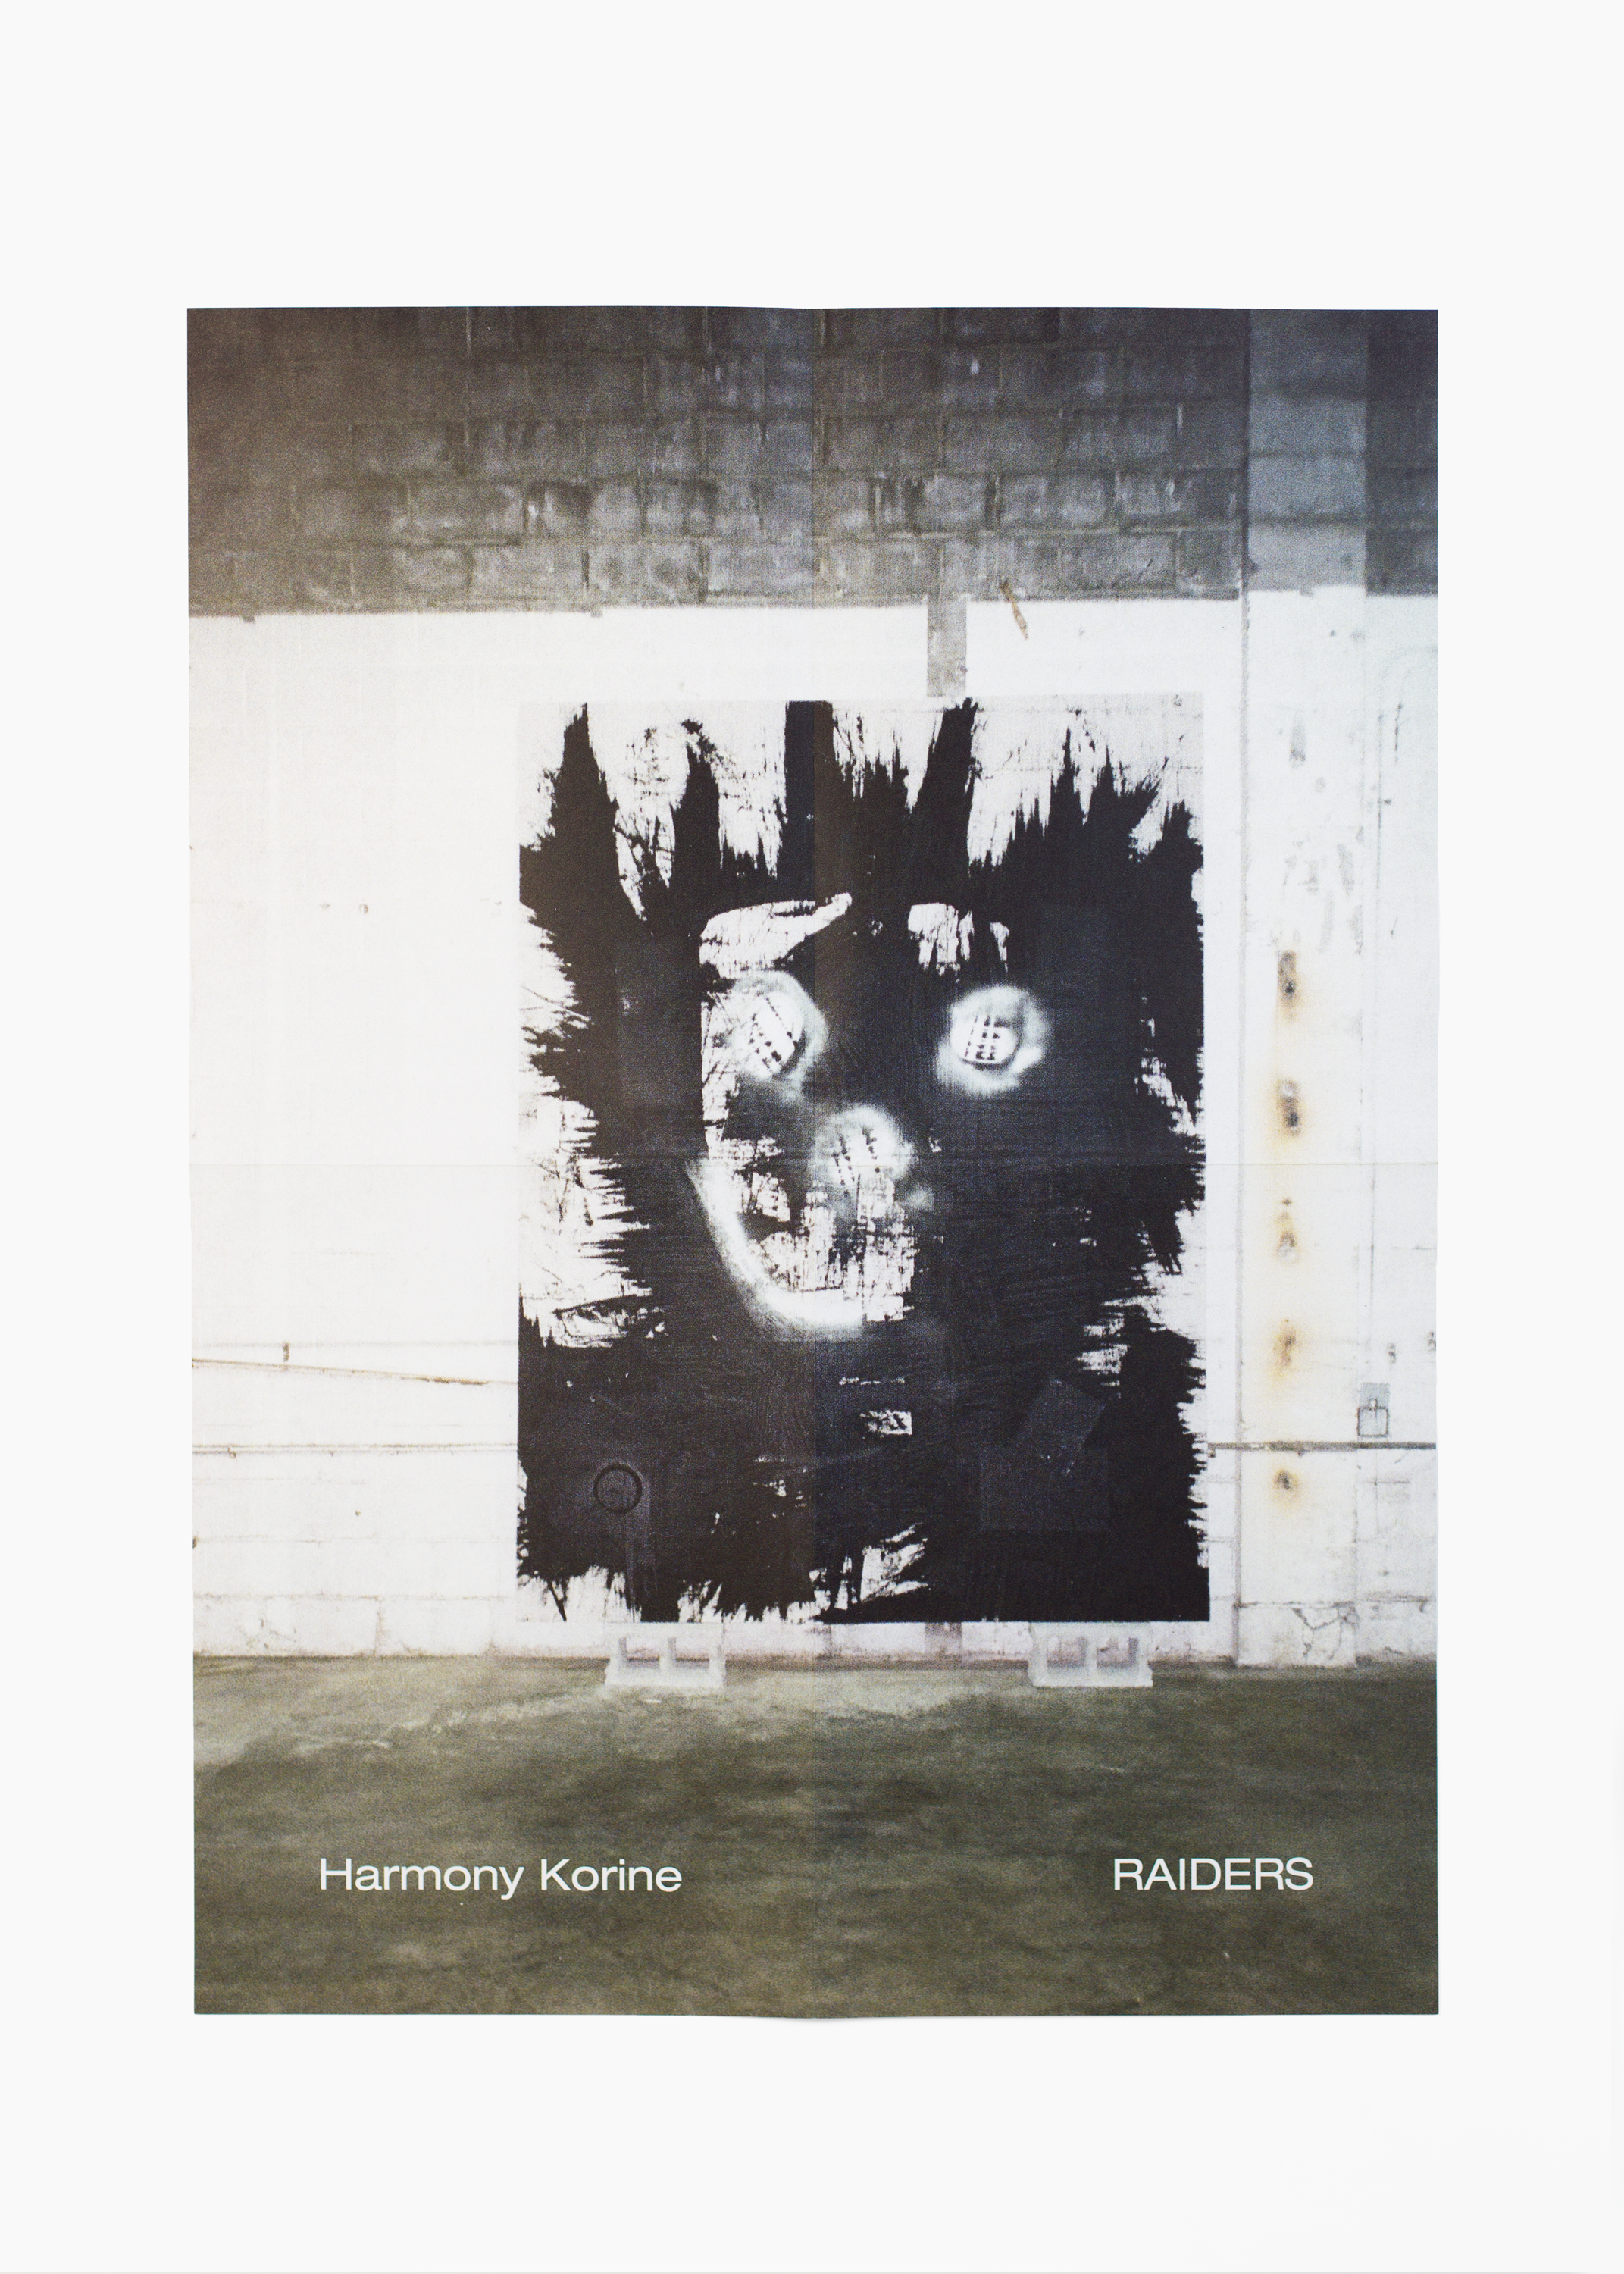 "Harmony Korine - Raiders</br>Exhibition poster 37 x 51 cm</br>Gagosian 2015</br>€50 <a href=""https://www.paypal.com/cgi-bin/webscr?cmd=_s-xclick&amp;hosted_button_id=JKR5EVKWMFXWG"">Add to Cart</a>"